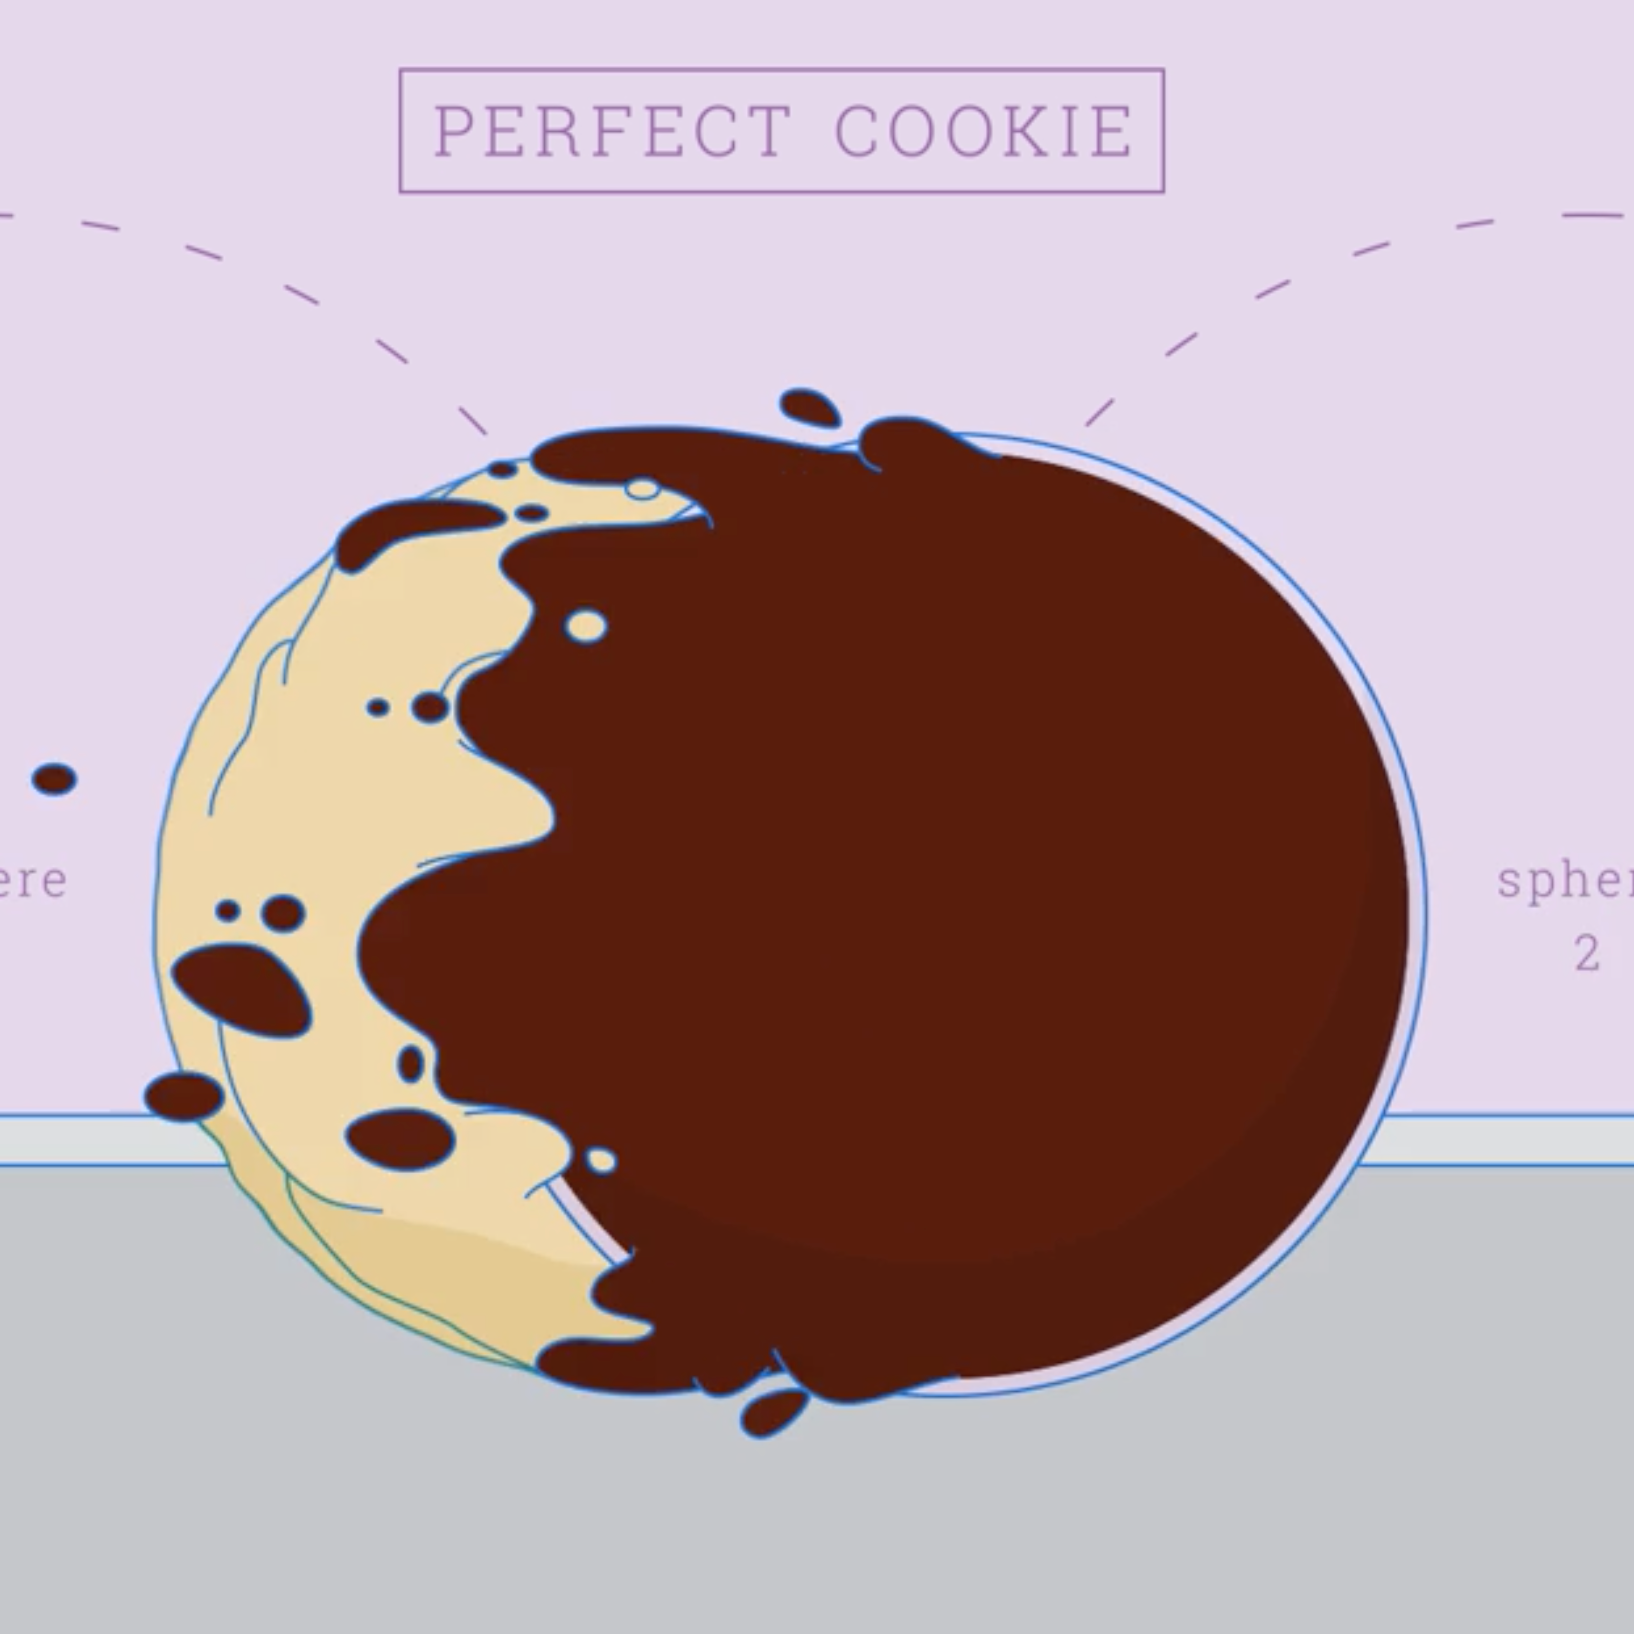 Can you use math to calculate the perfect chocolate cookie?